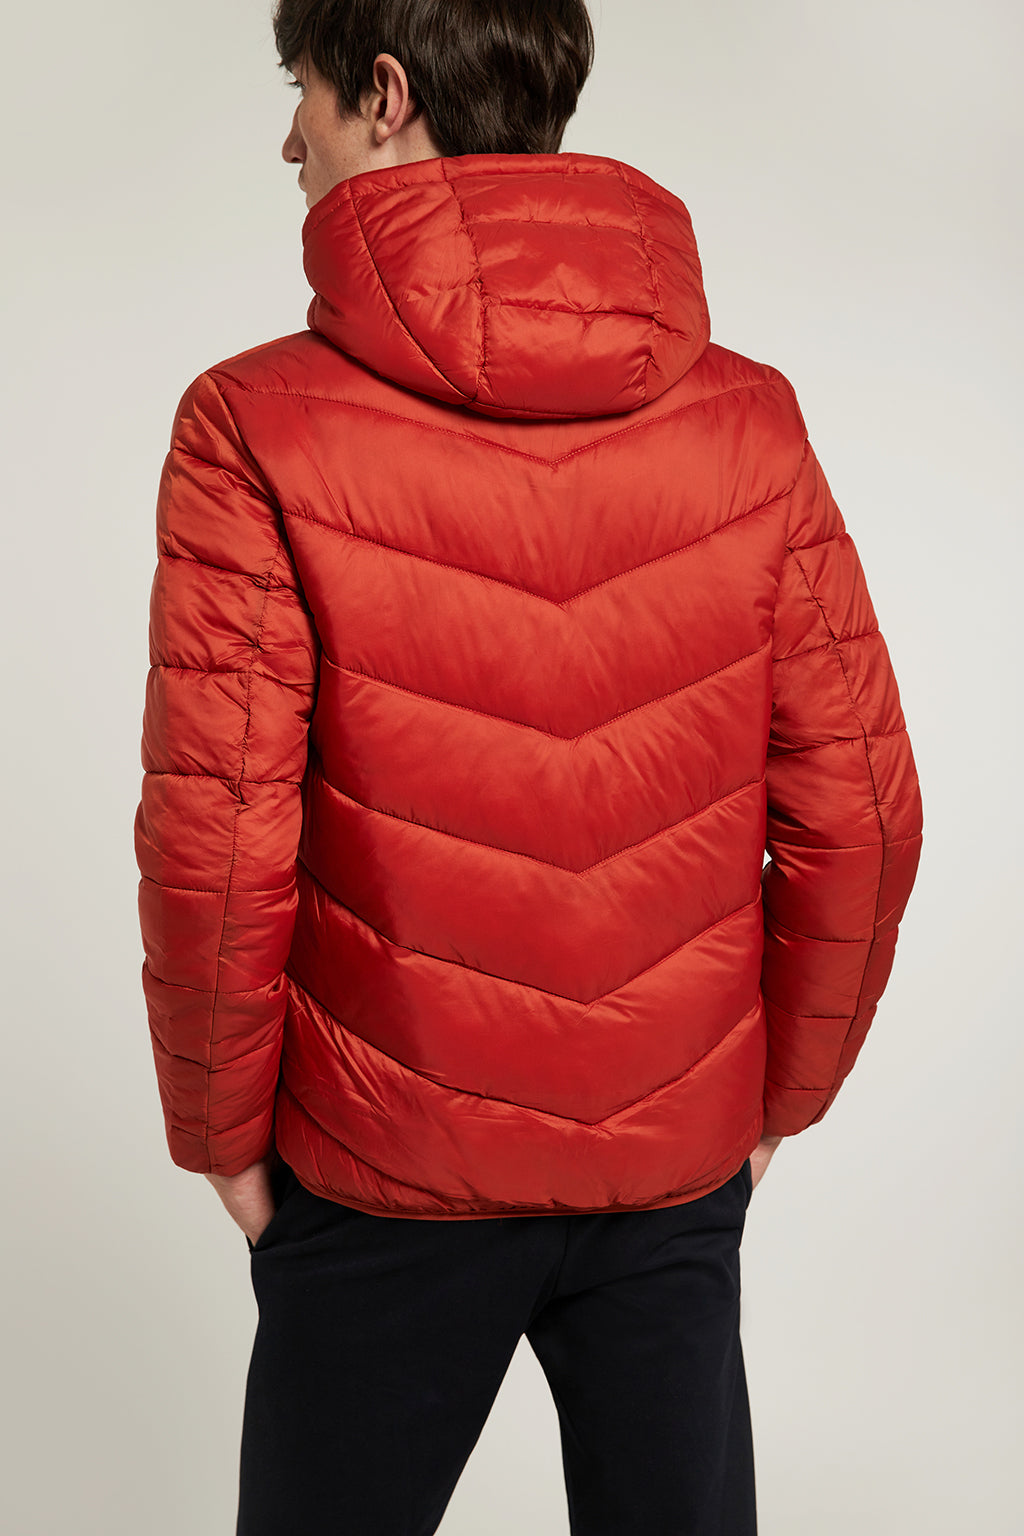 Orange quilted jacket with heat-sealed zip